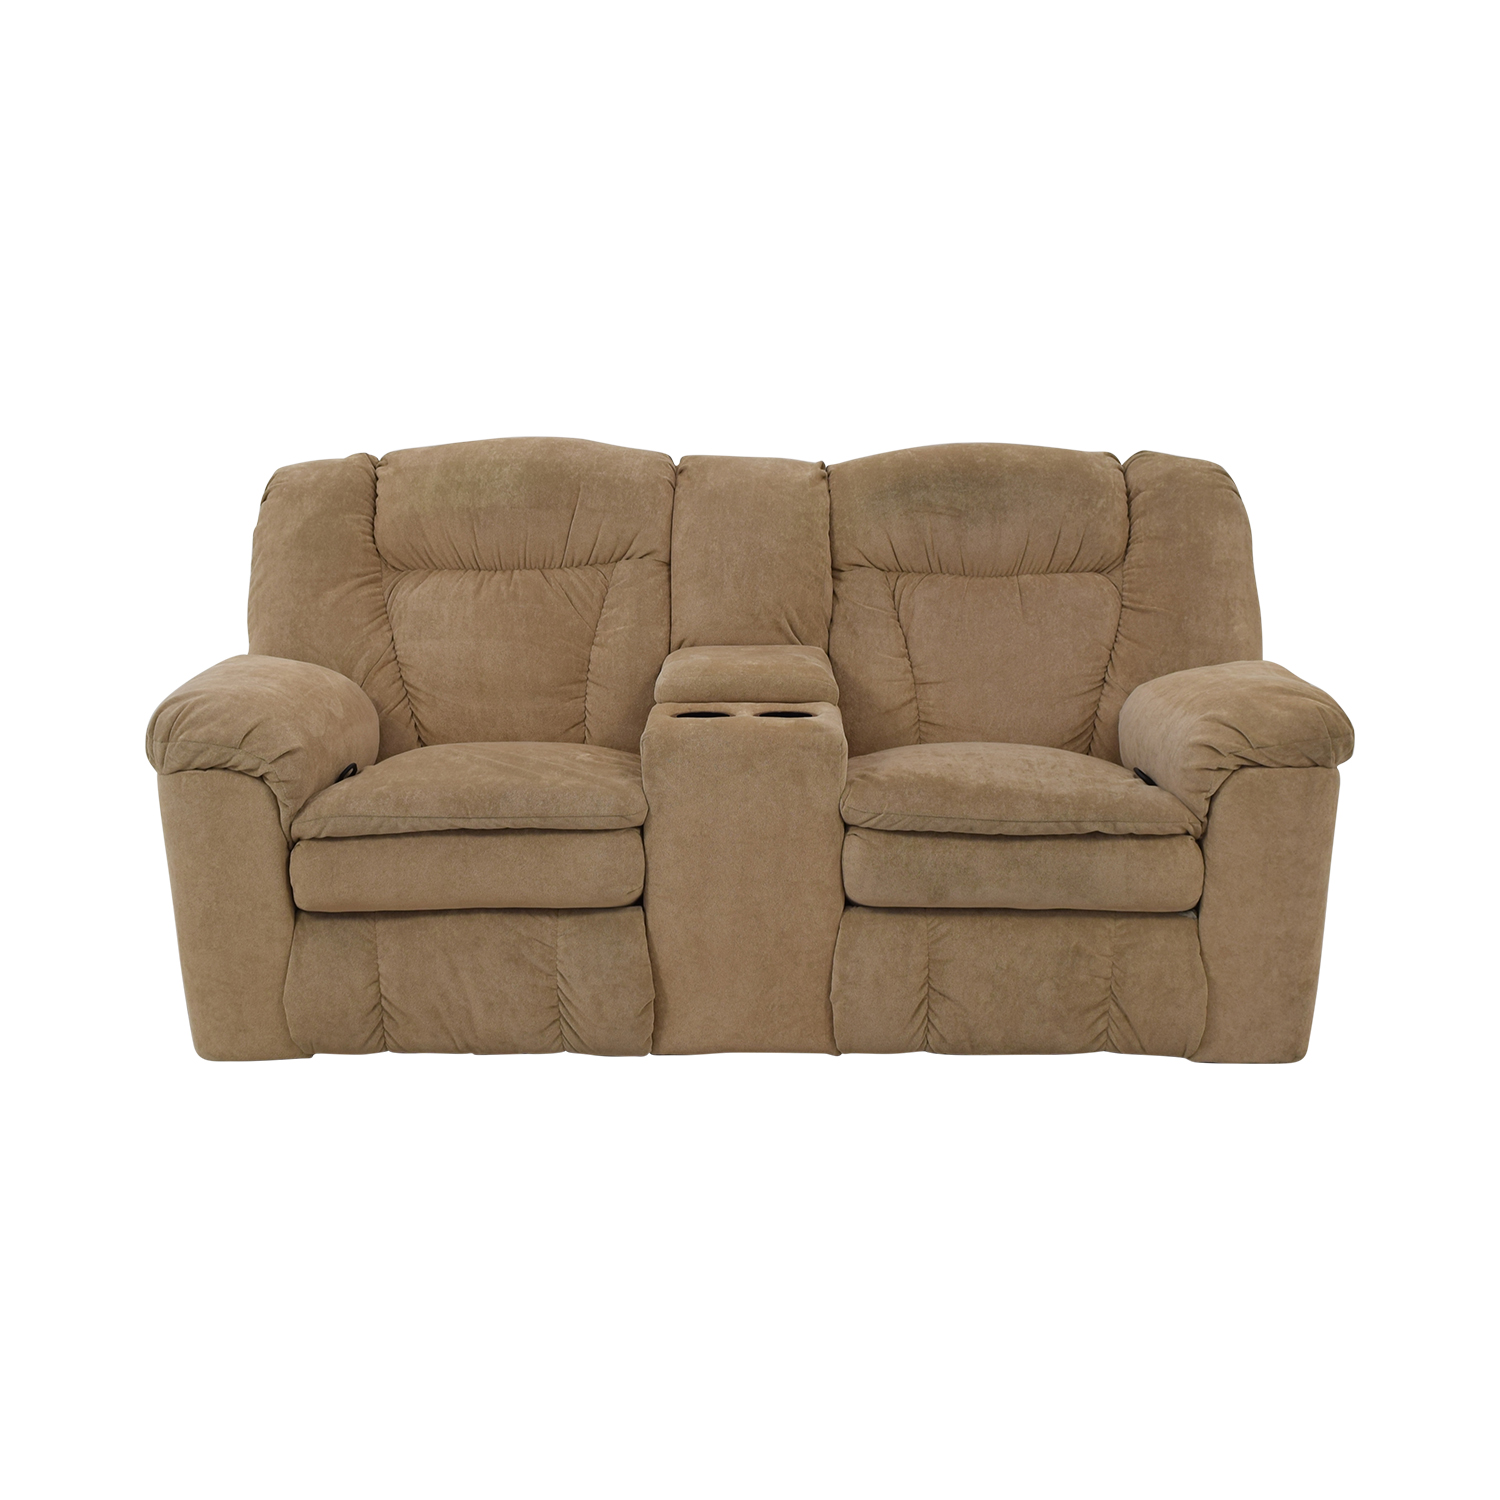 Lane Furniture Lane Furniture Reclining Sofa for sale